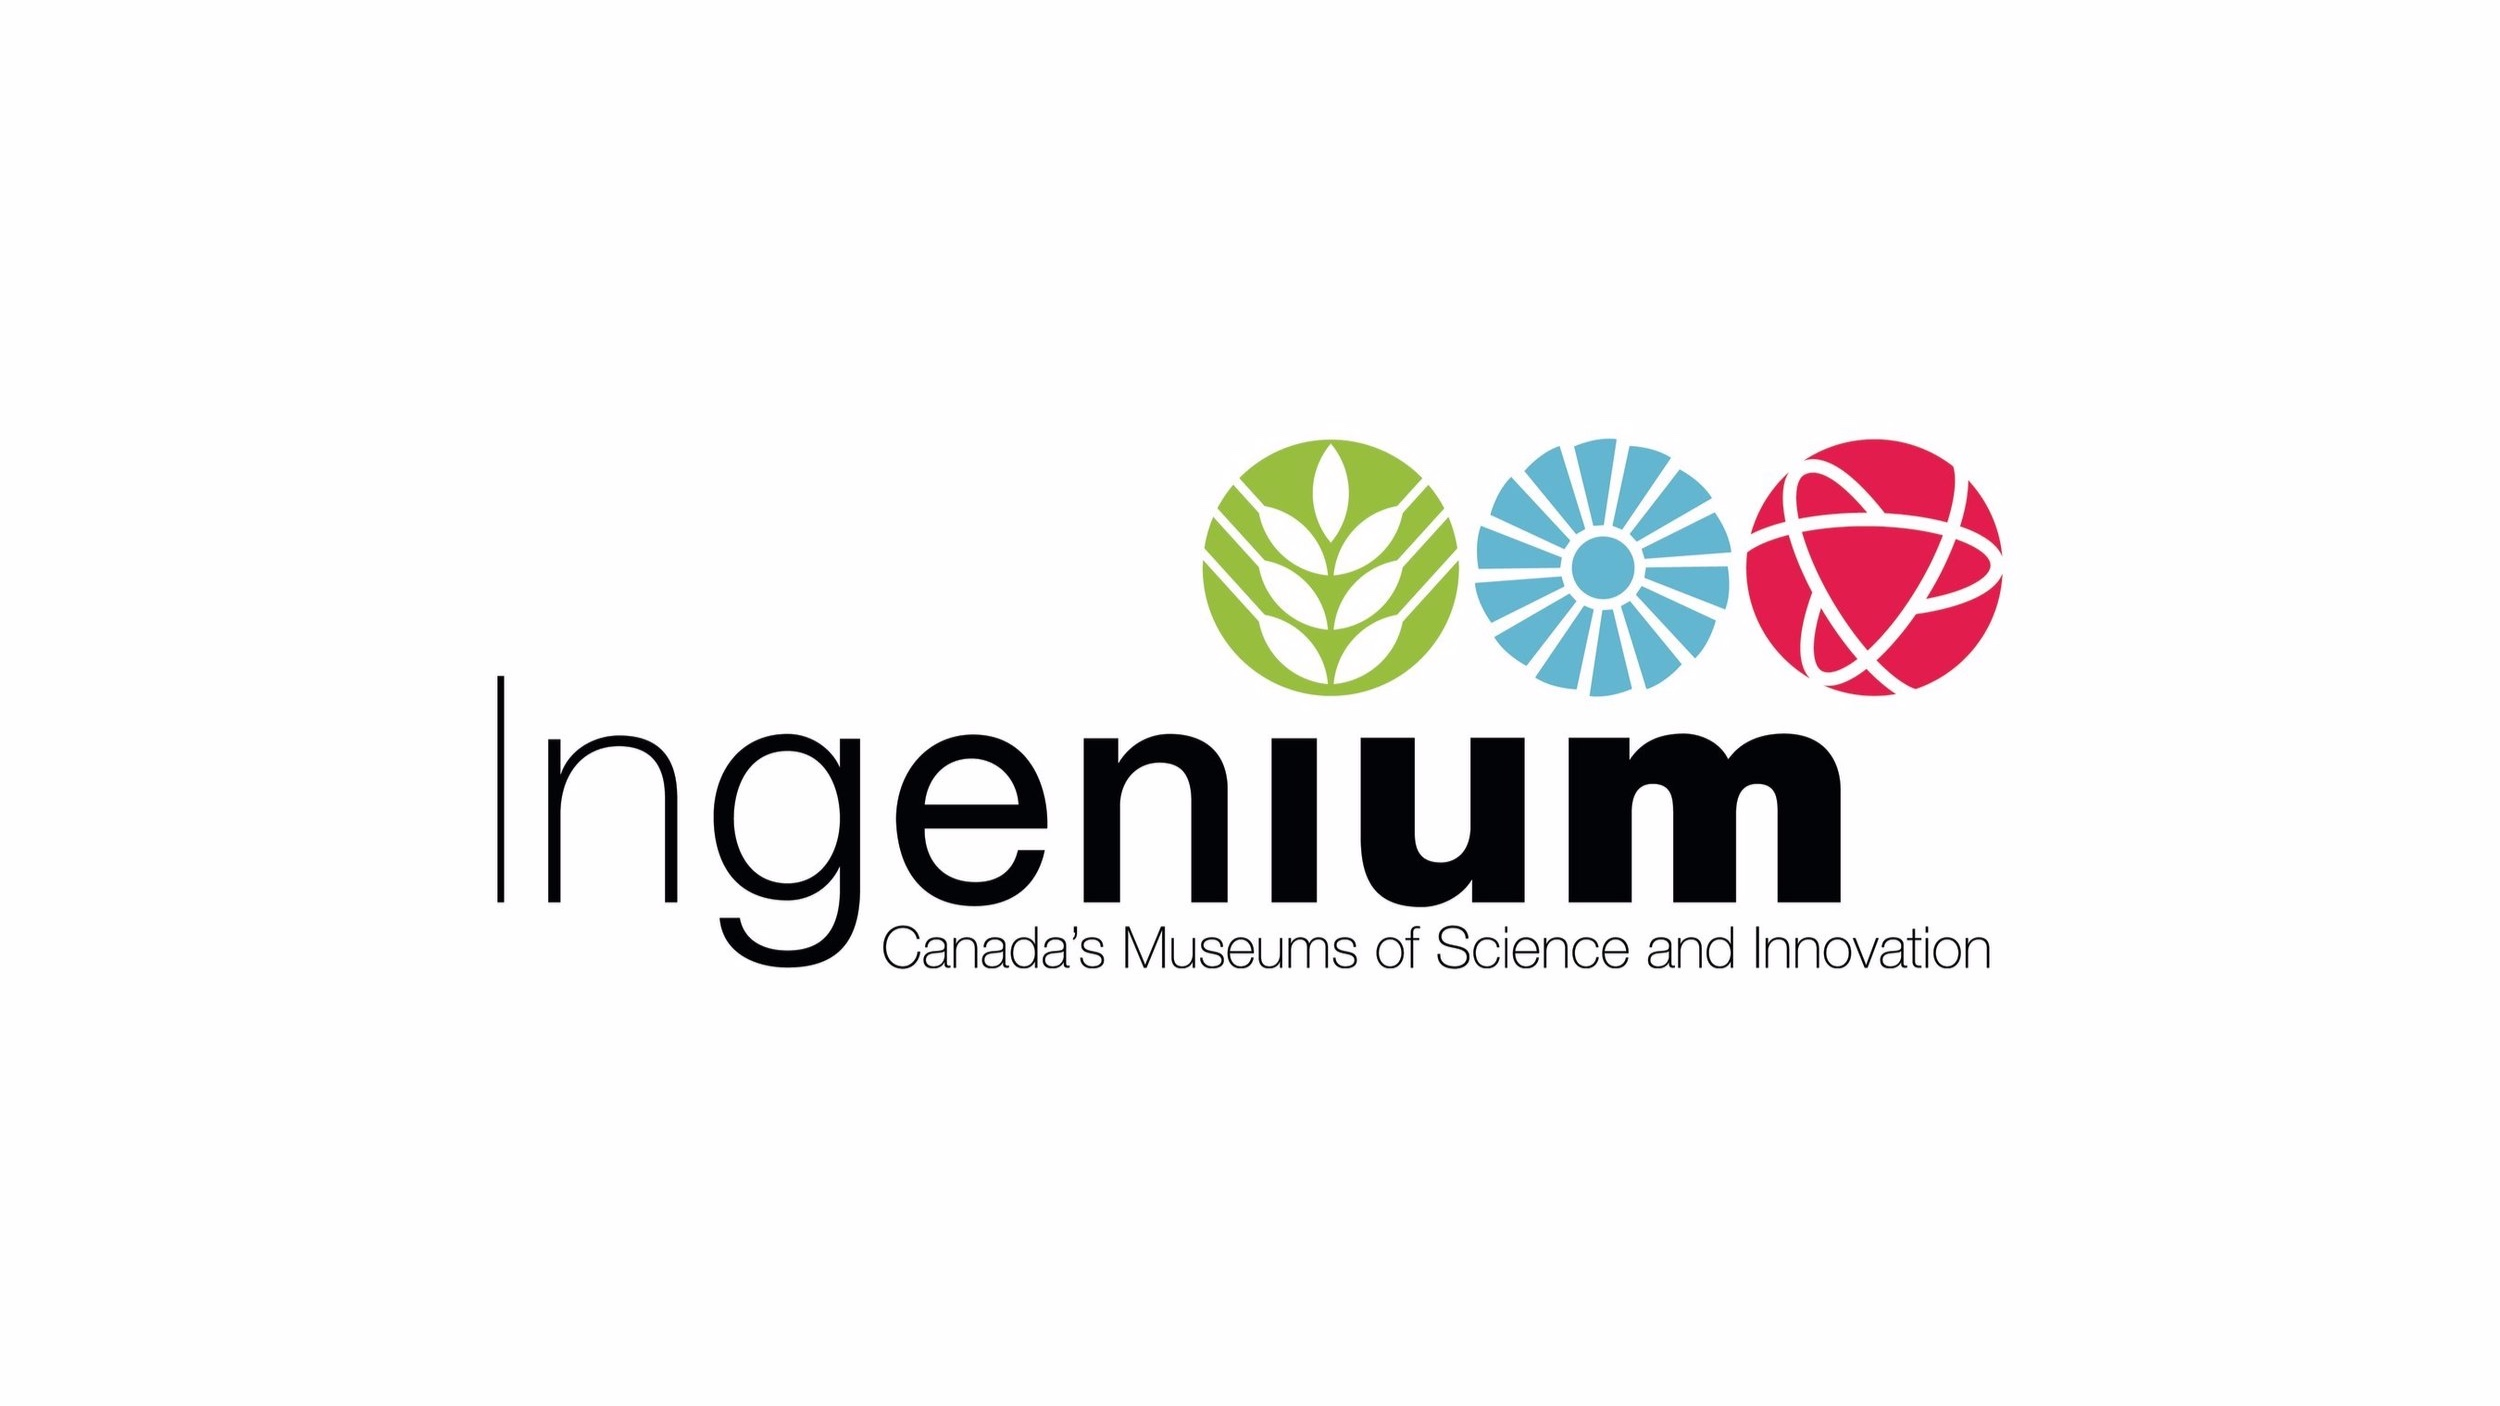 Ingenium___Canada_s_Museums_of_Science_and_Innovation_Ingenium_l.jpg